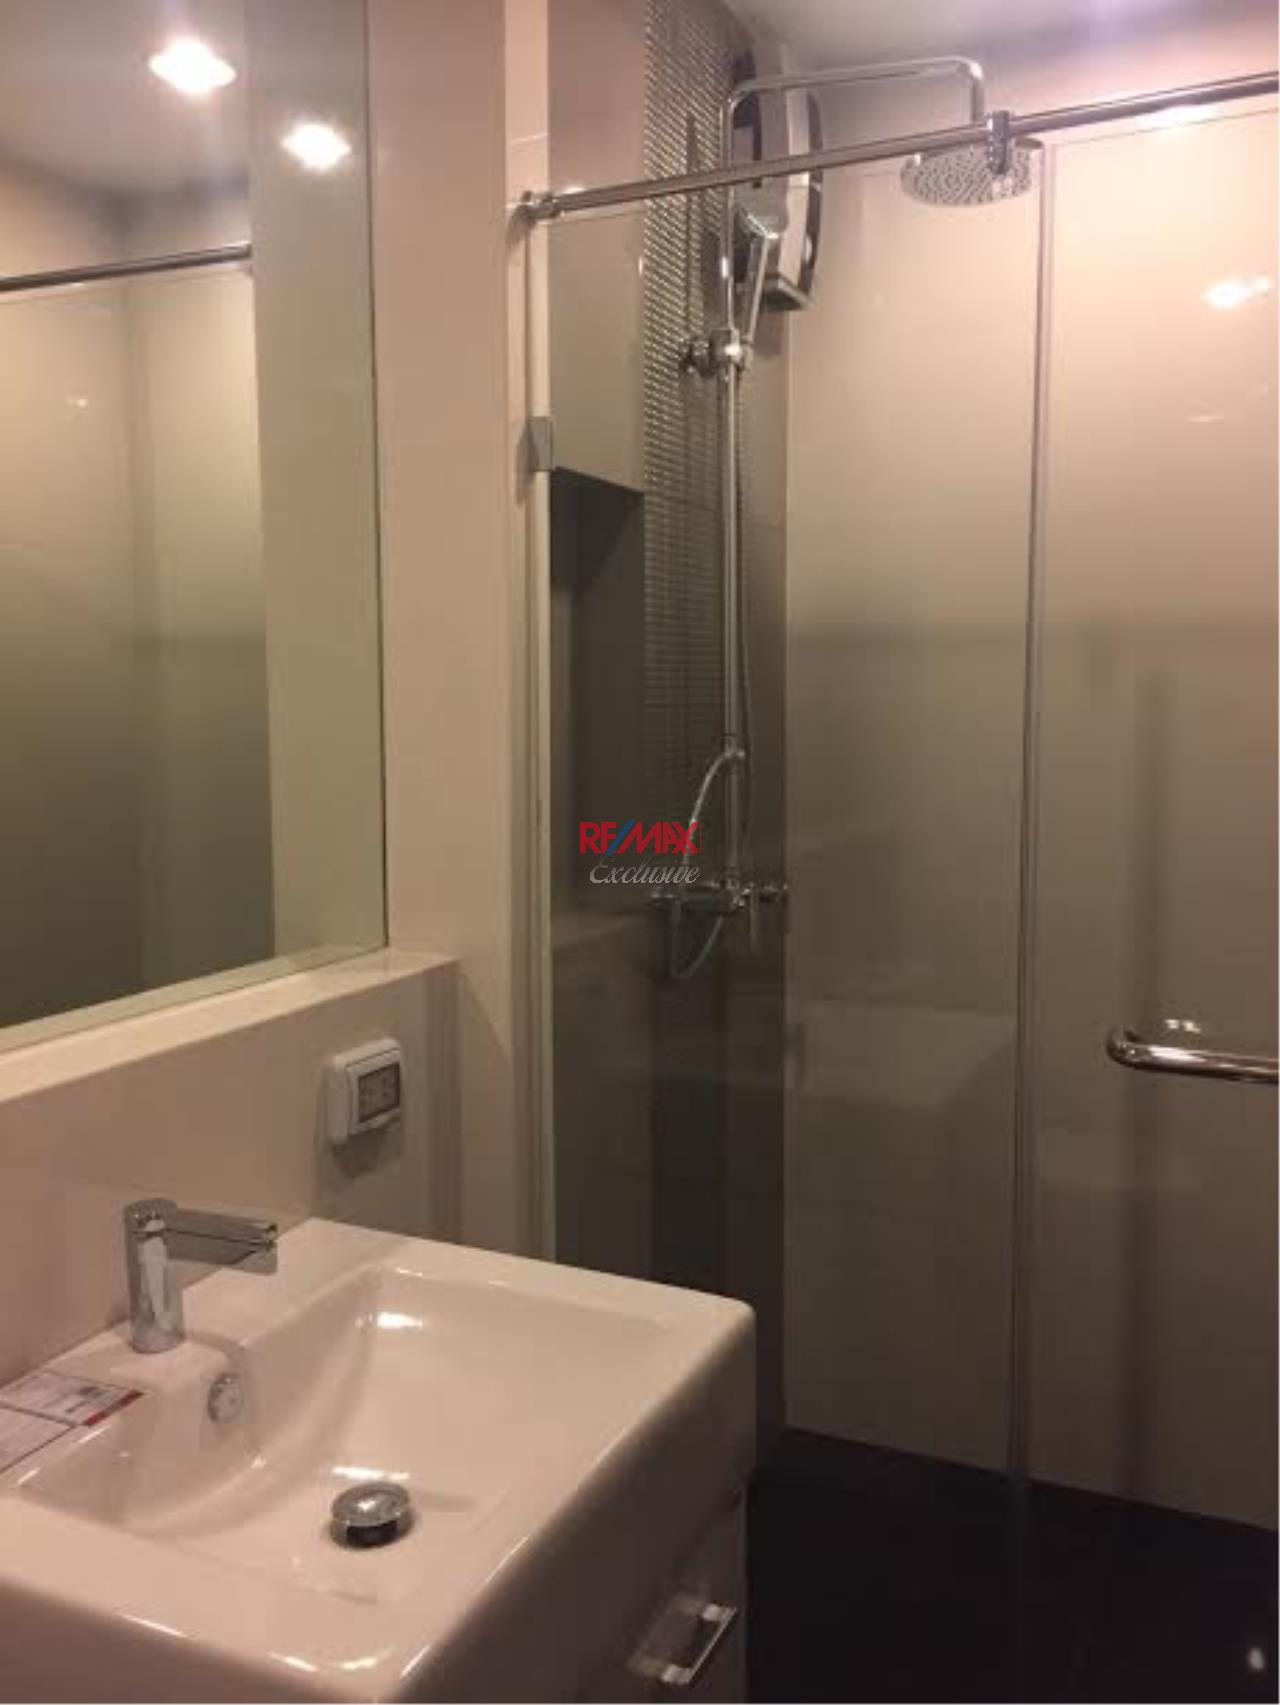 RE/MAX Exclusive Agency's Rhytm Sathorn, 2 Bedrooms, 2 Bathrooms, For Rent Only 50,000 THB 7